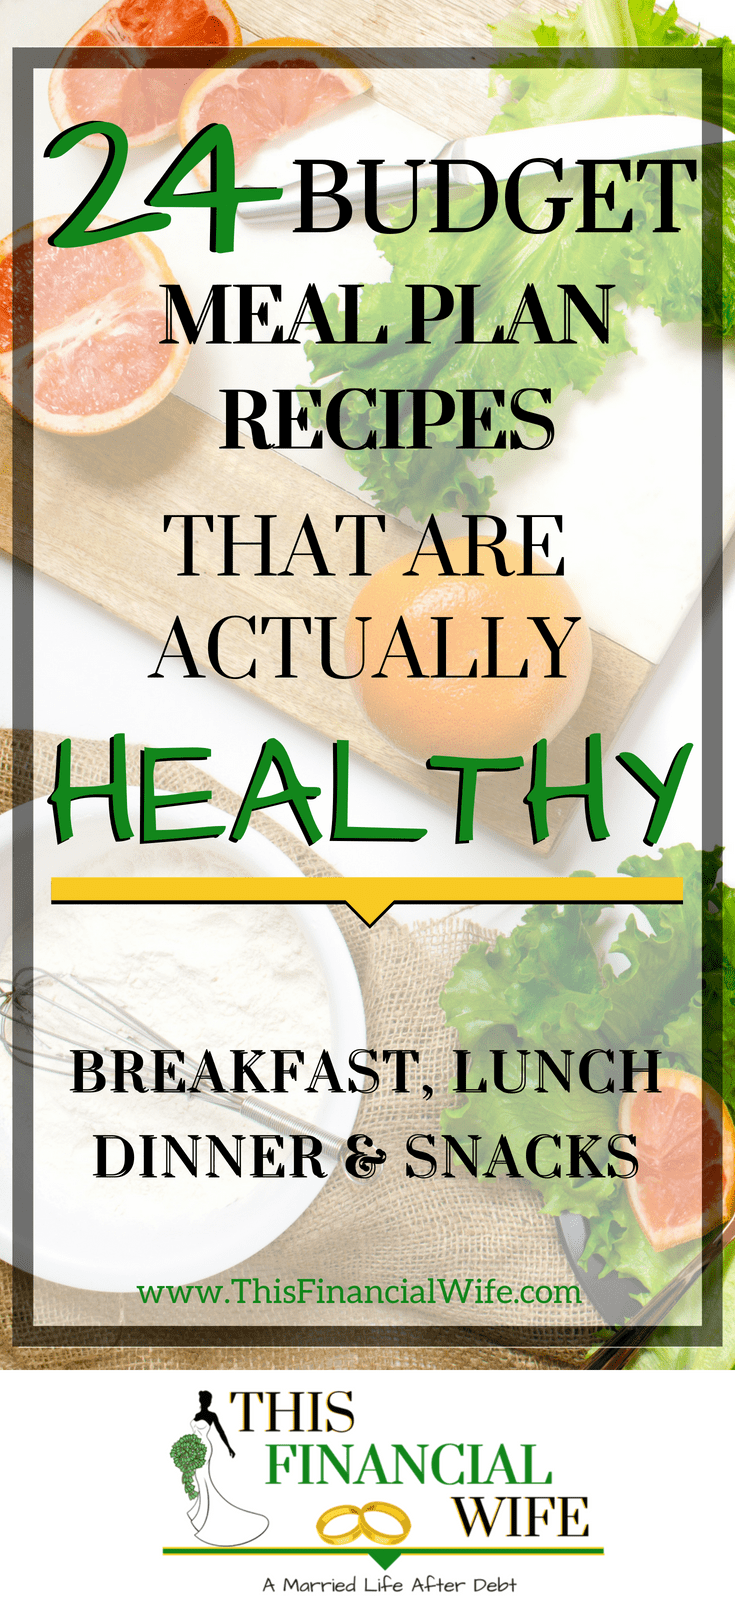 24 Budget Meal Plan Recipes That Are Actually Healthy images